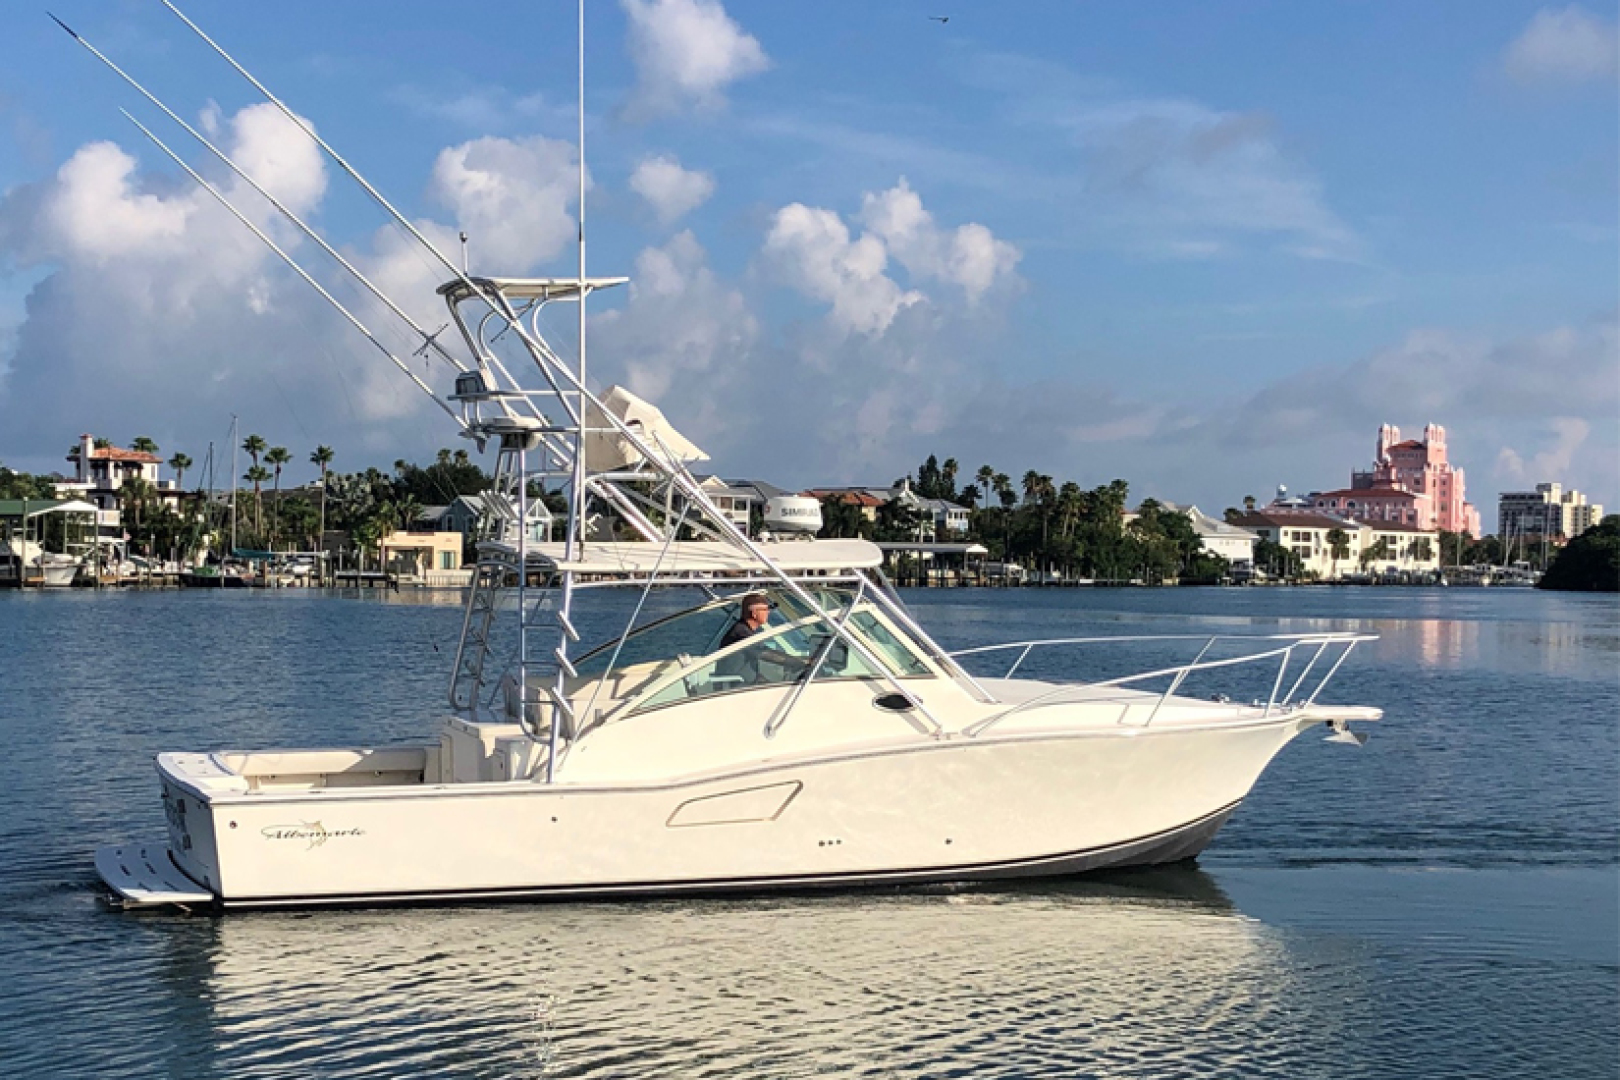 Freedom is a Albemarle 32 Express Yacht For Sale in St. Petersburg-2006 Albemarle 32 Express - Freedom-0